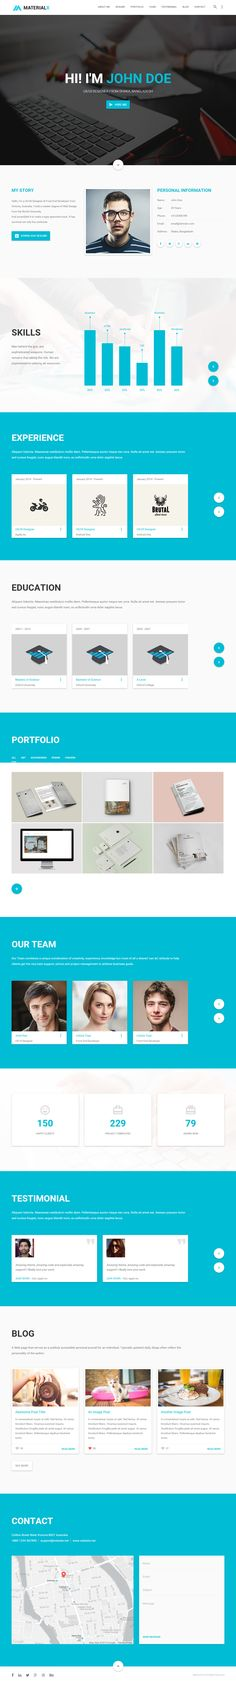 Qualicare Website Template Website - resume template monster